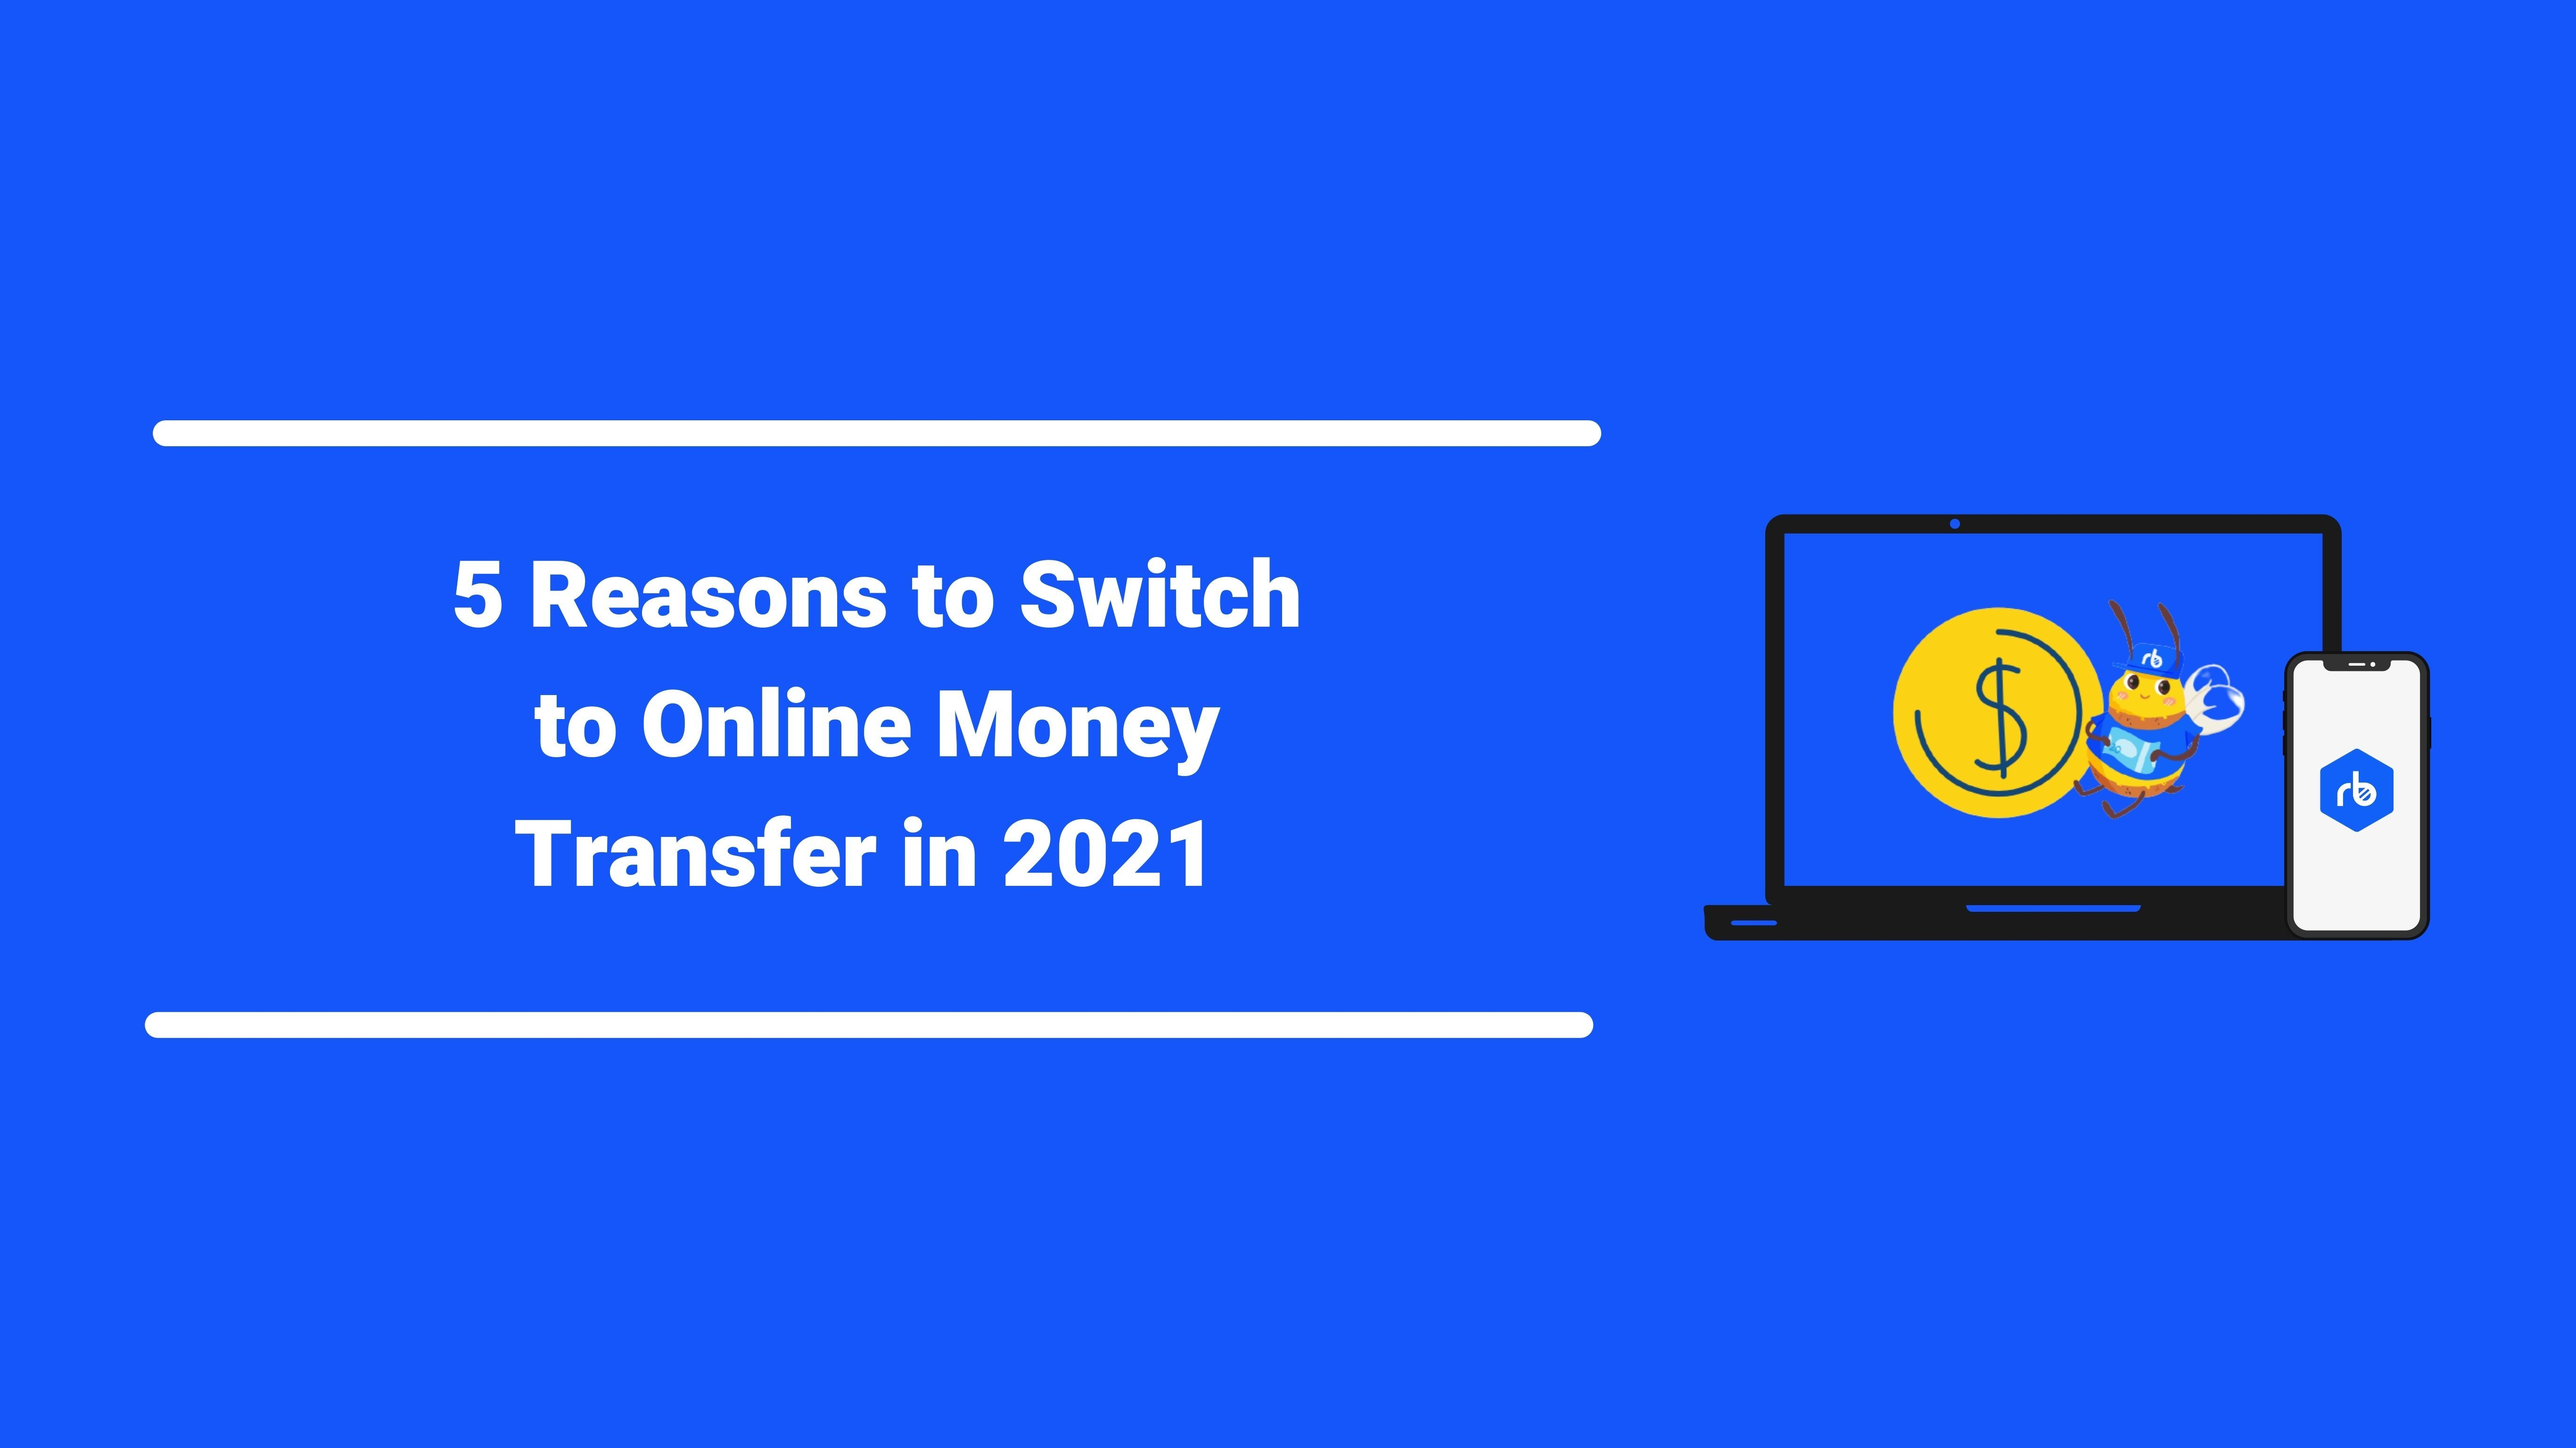 5 Reasons to Switch to Online Money Transfer in 2021